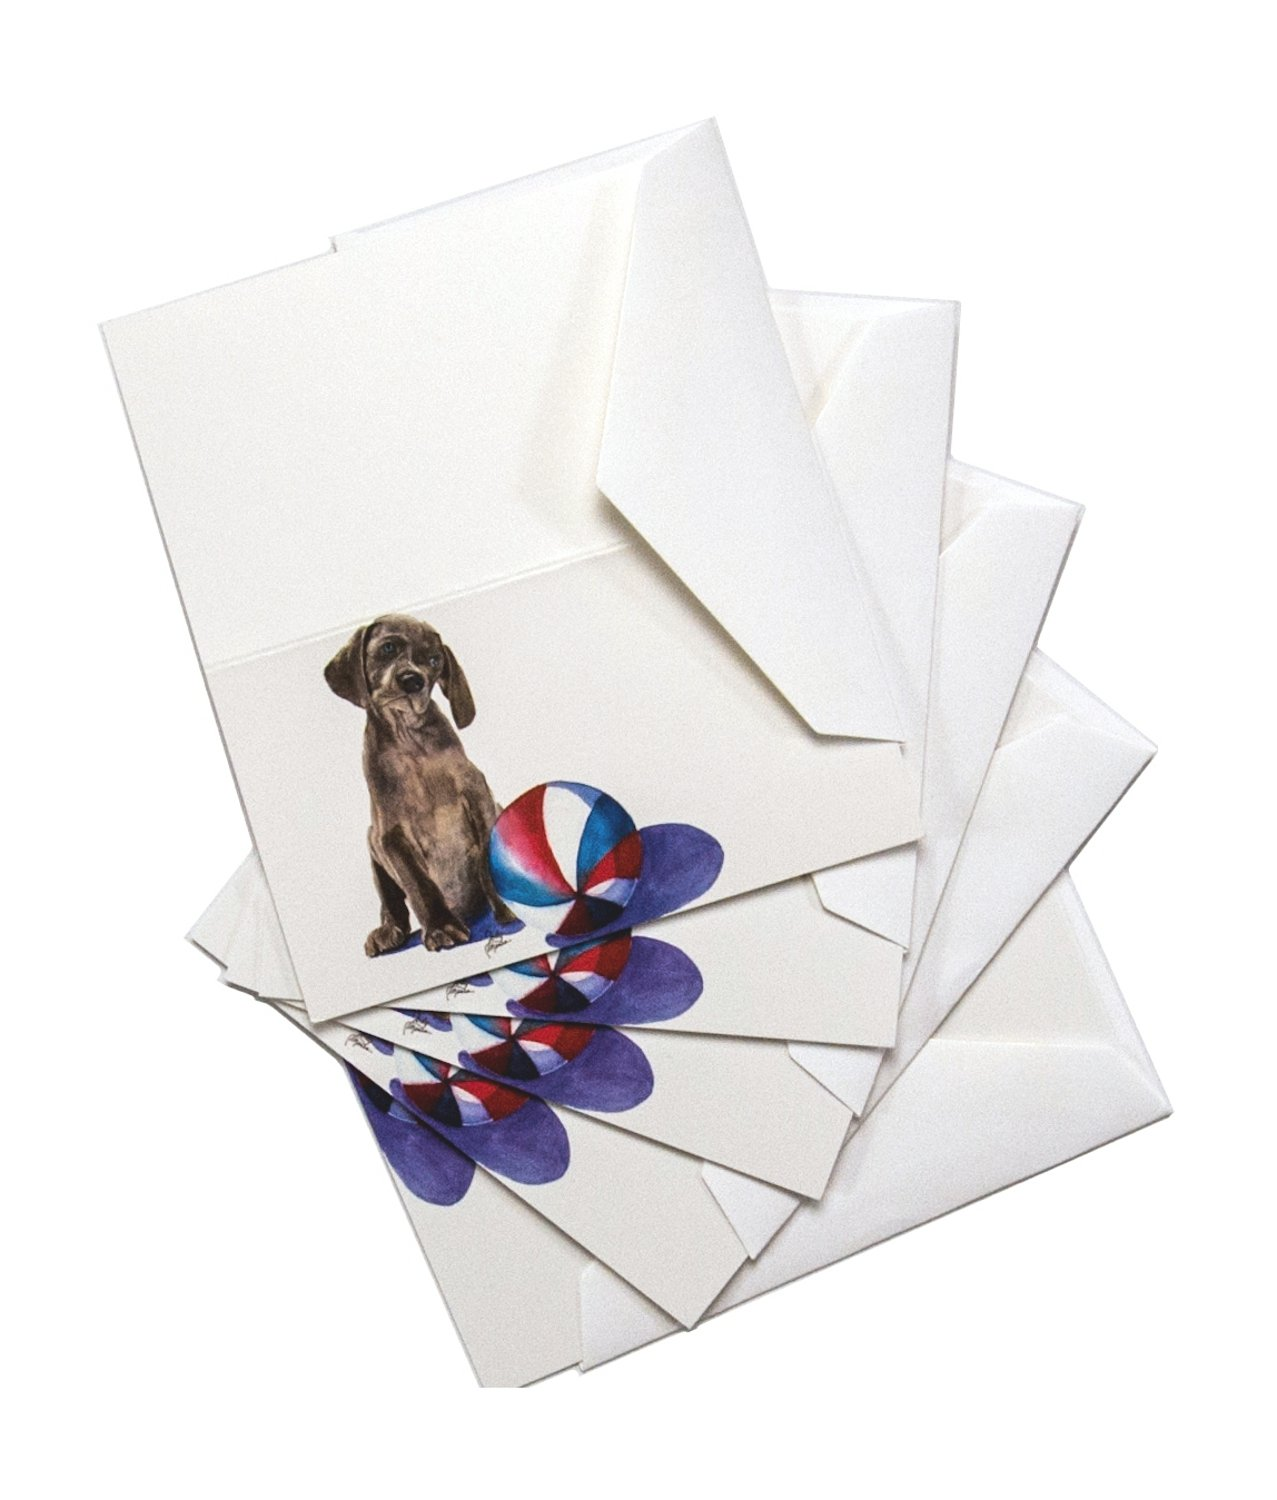 Rainbow Card Company 5-Pack Enclosure Card - Sammy